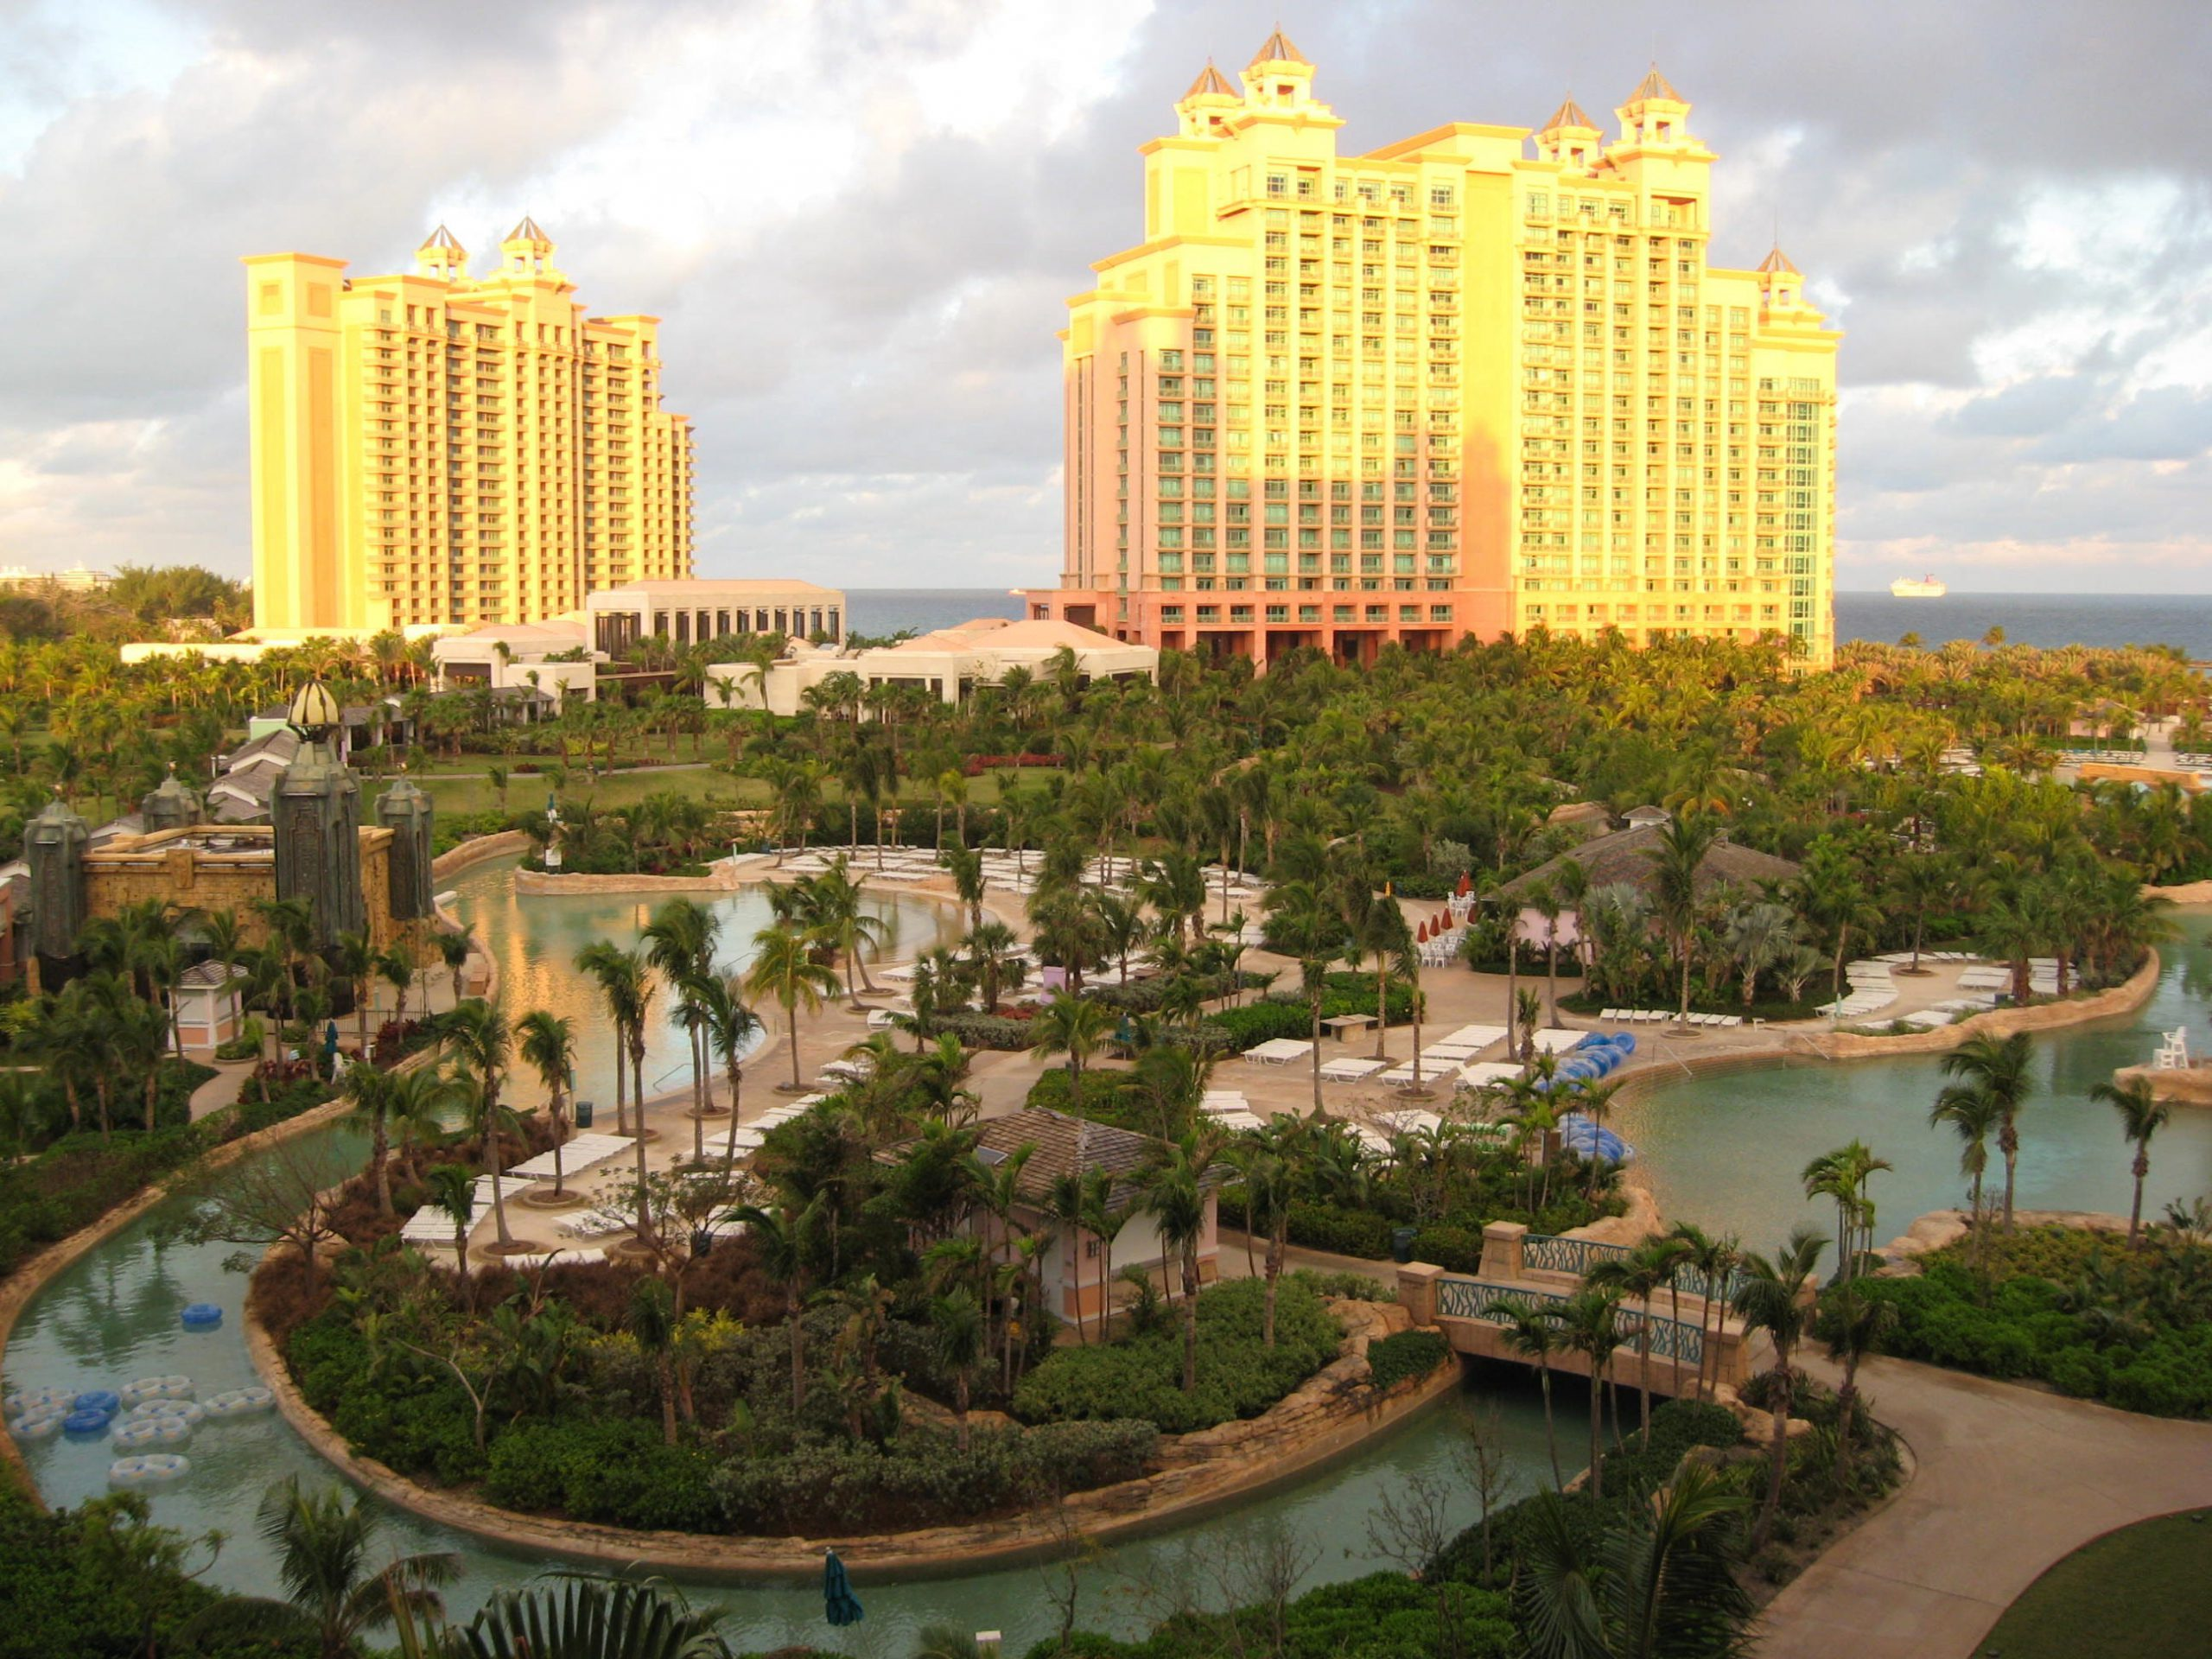 62fa3e23-2b13-415b-88ab-320e04513105-20_In_The_Bahamas_Atlantis_Paradise_Island_reopens_on_July_1_Credit_Atlantis_Paradise_Island